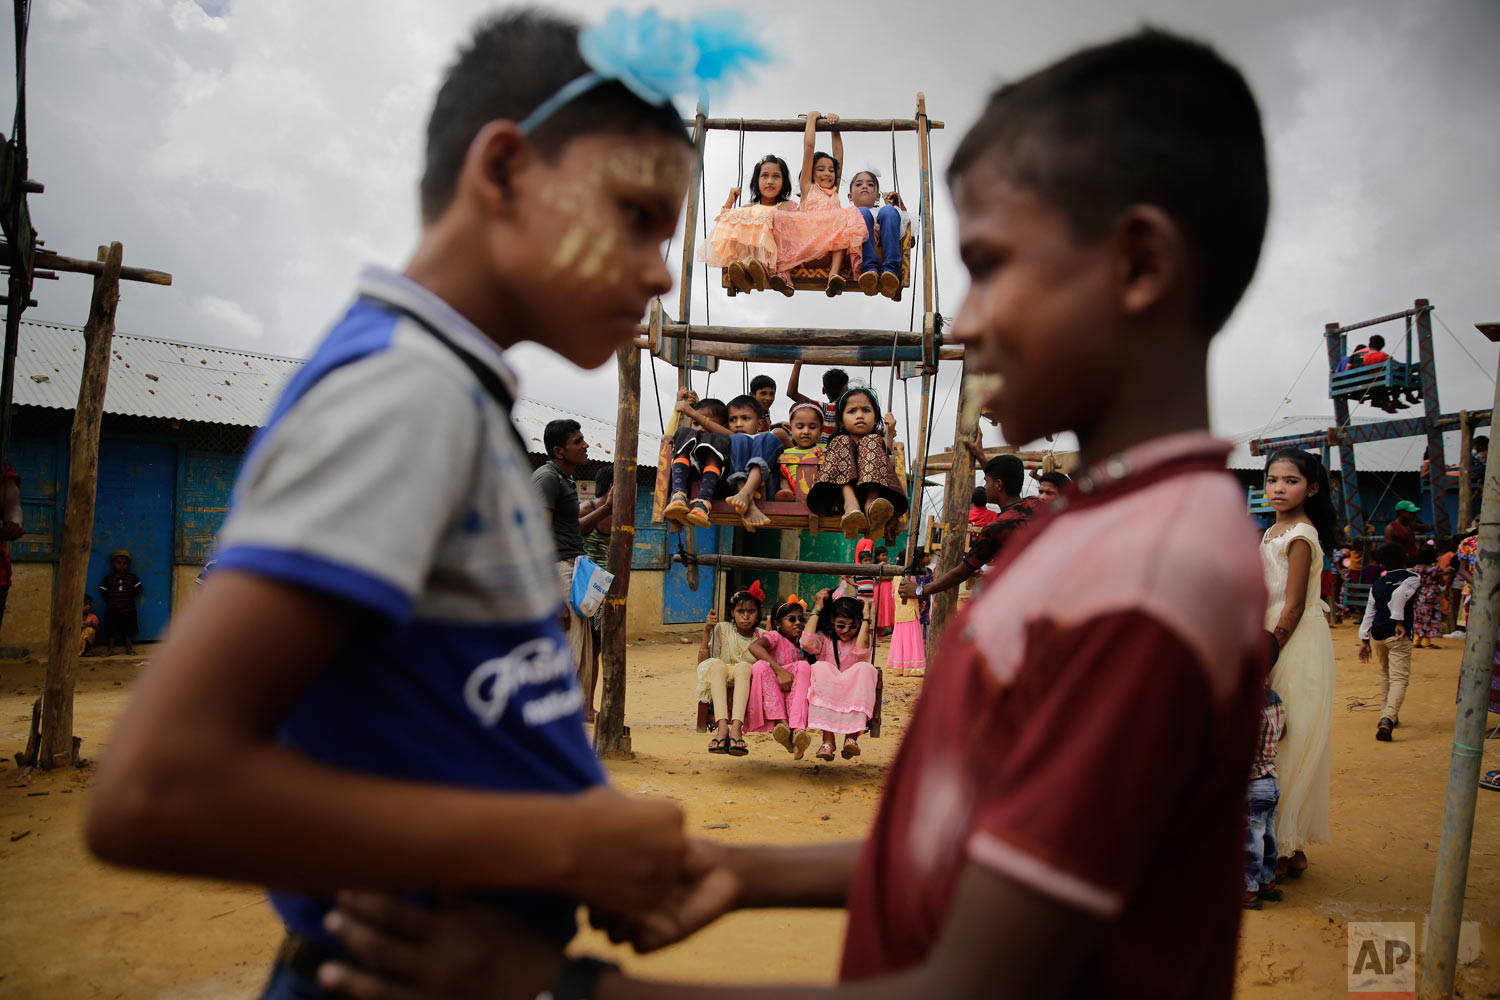 Rohingya refugee boys greet each other as girls ride in a ferris wheel, specially brought in to the camps for Eid al Adha celebrations at the Kutupalong refugee camp, Bangladesh, Wednesday, Aug. 22, 2018. Hundreds of thousands of Rohingya refugees are celebrating Eid al-Adha in sprawling Bangladeshi camps where they have been living amid uncertainty over their future after they fled Myanmar to escape violence and a massive crackdown. (AP Photo/Altaf Qadri)